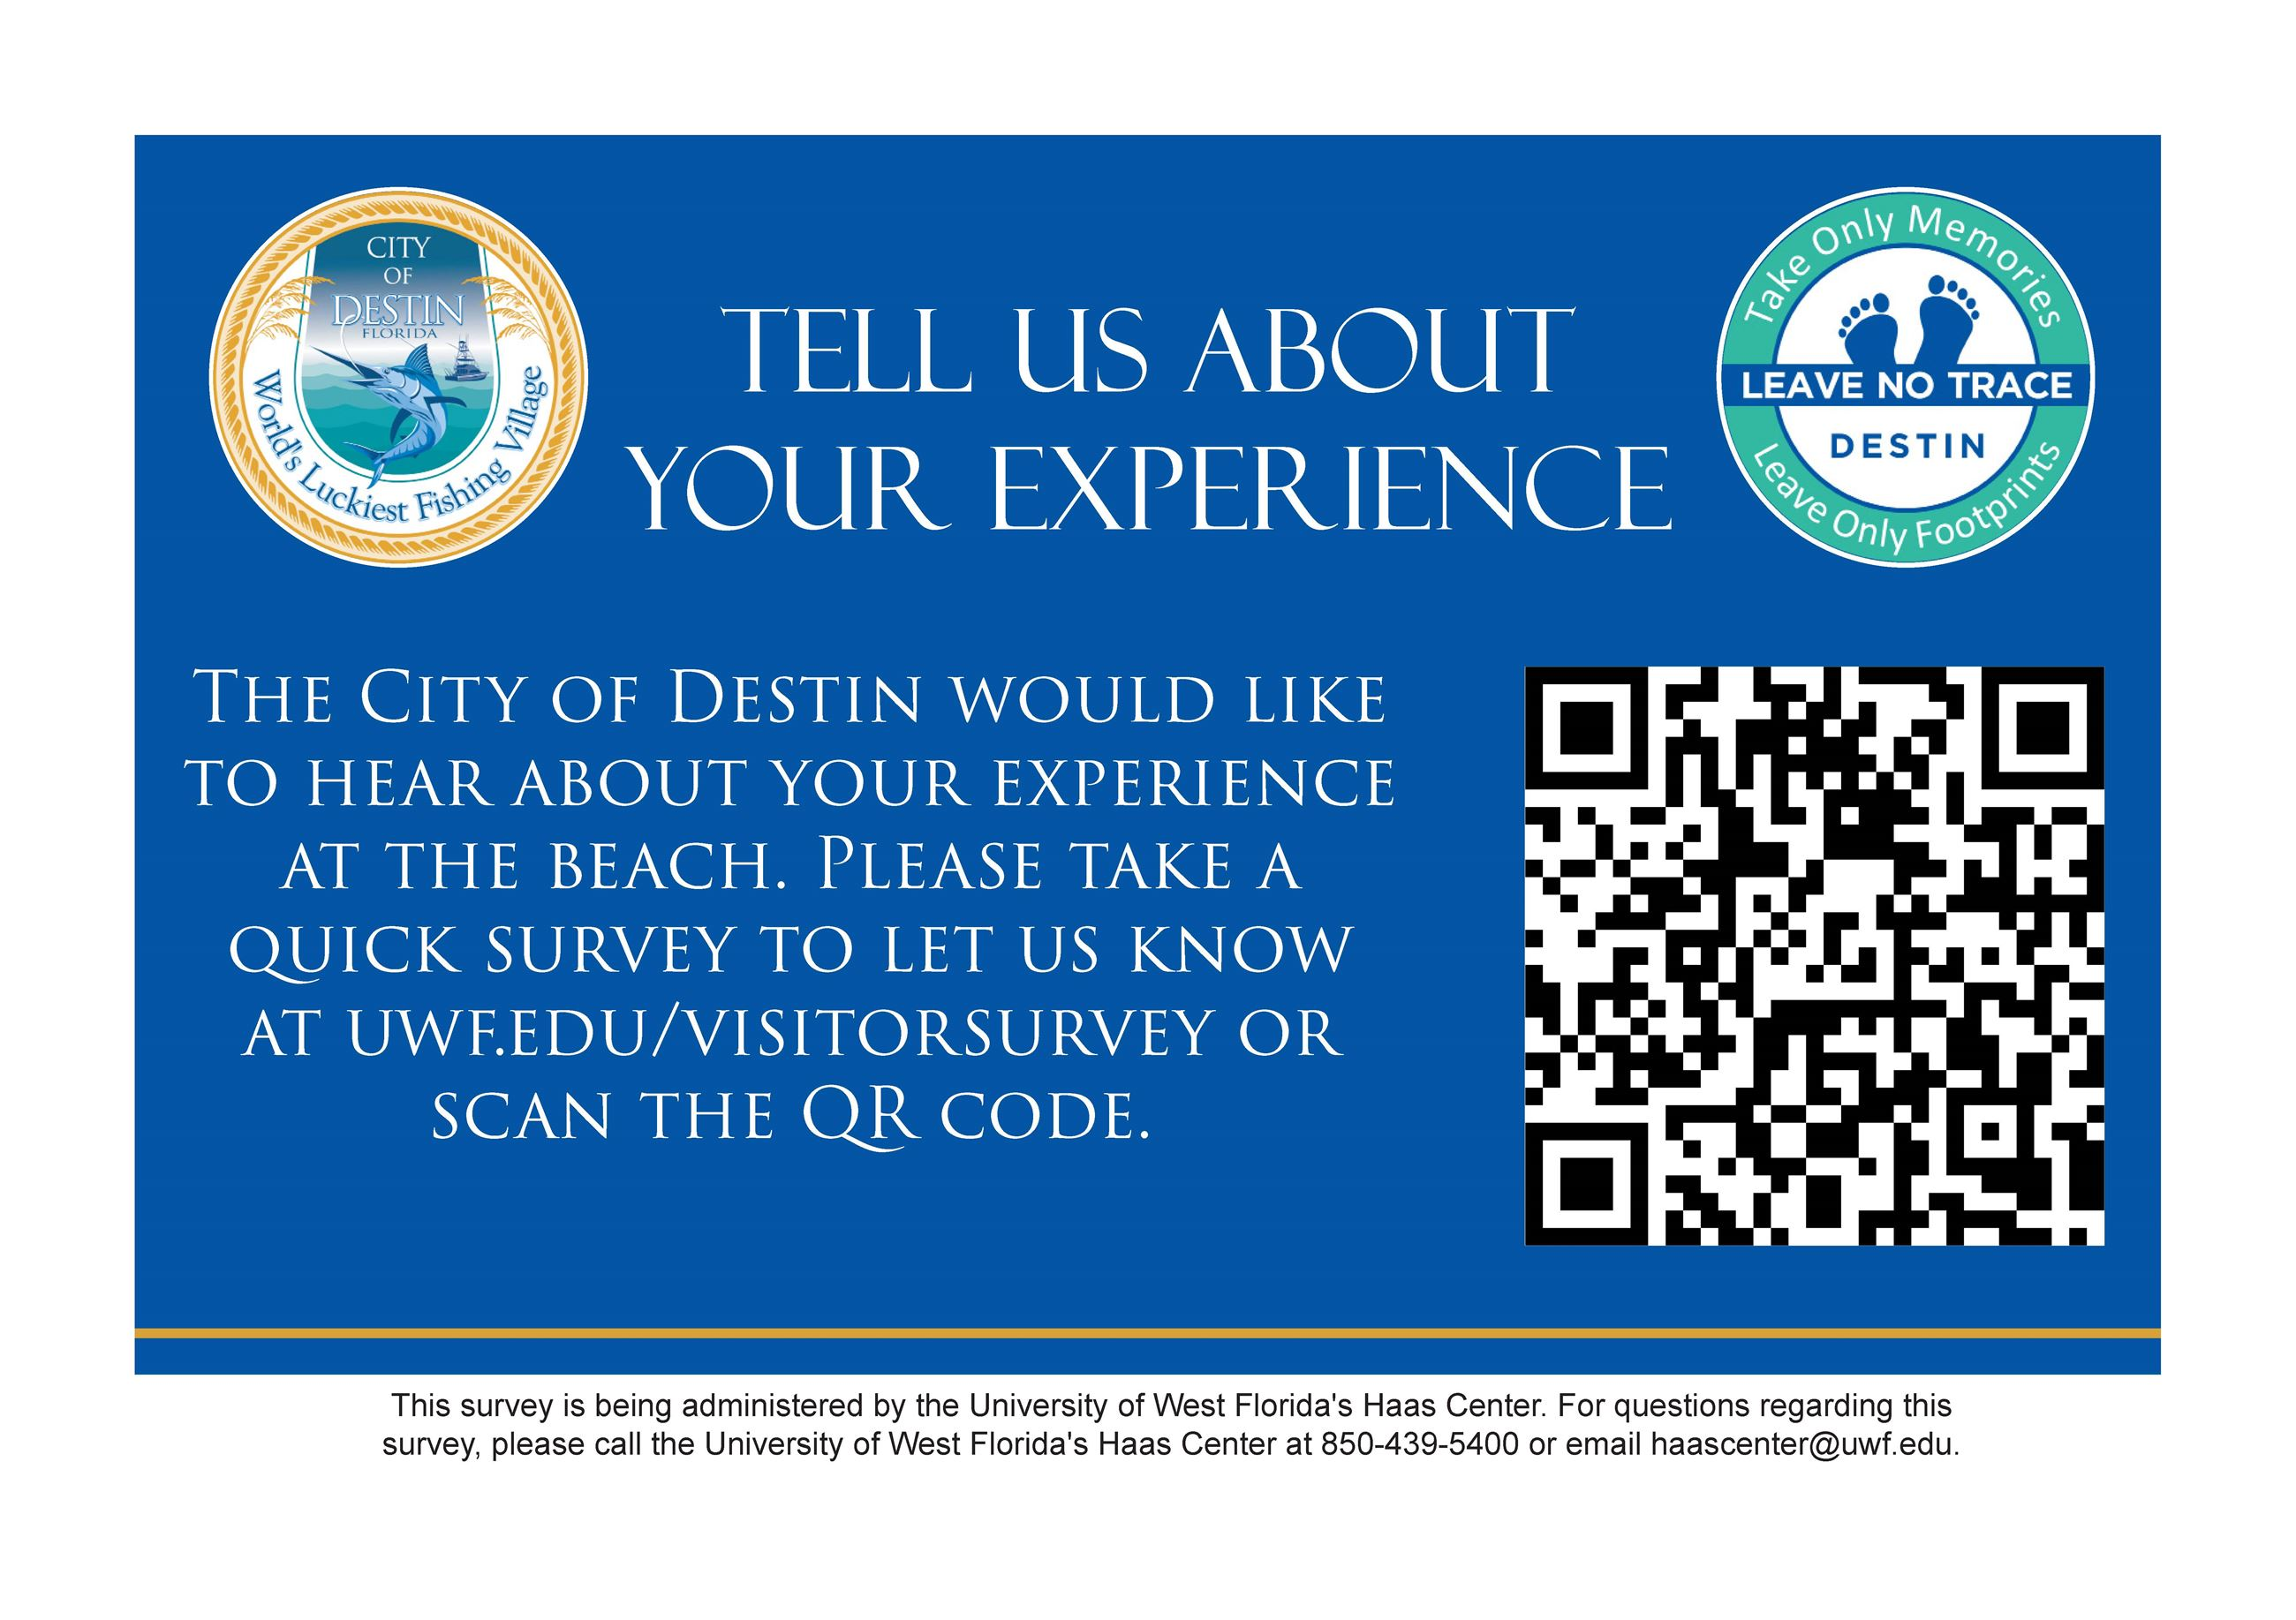 Image of the Destin Beach Survey sign with link and QR code